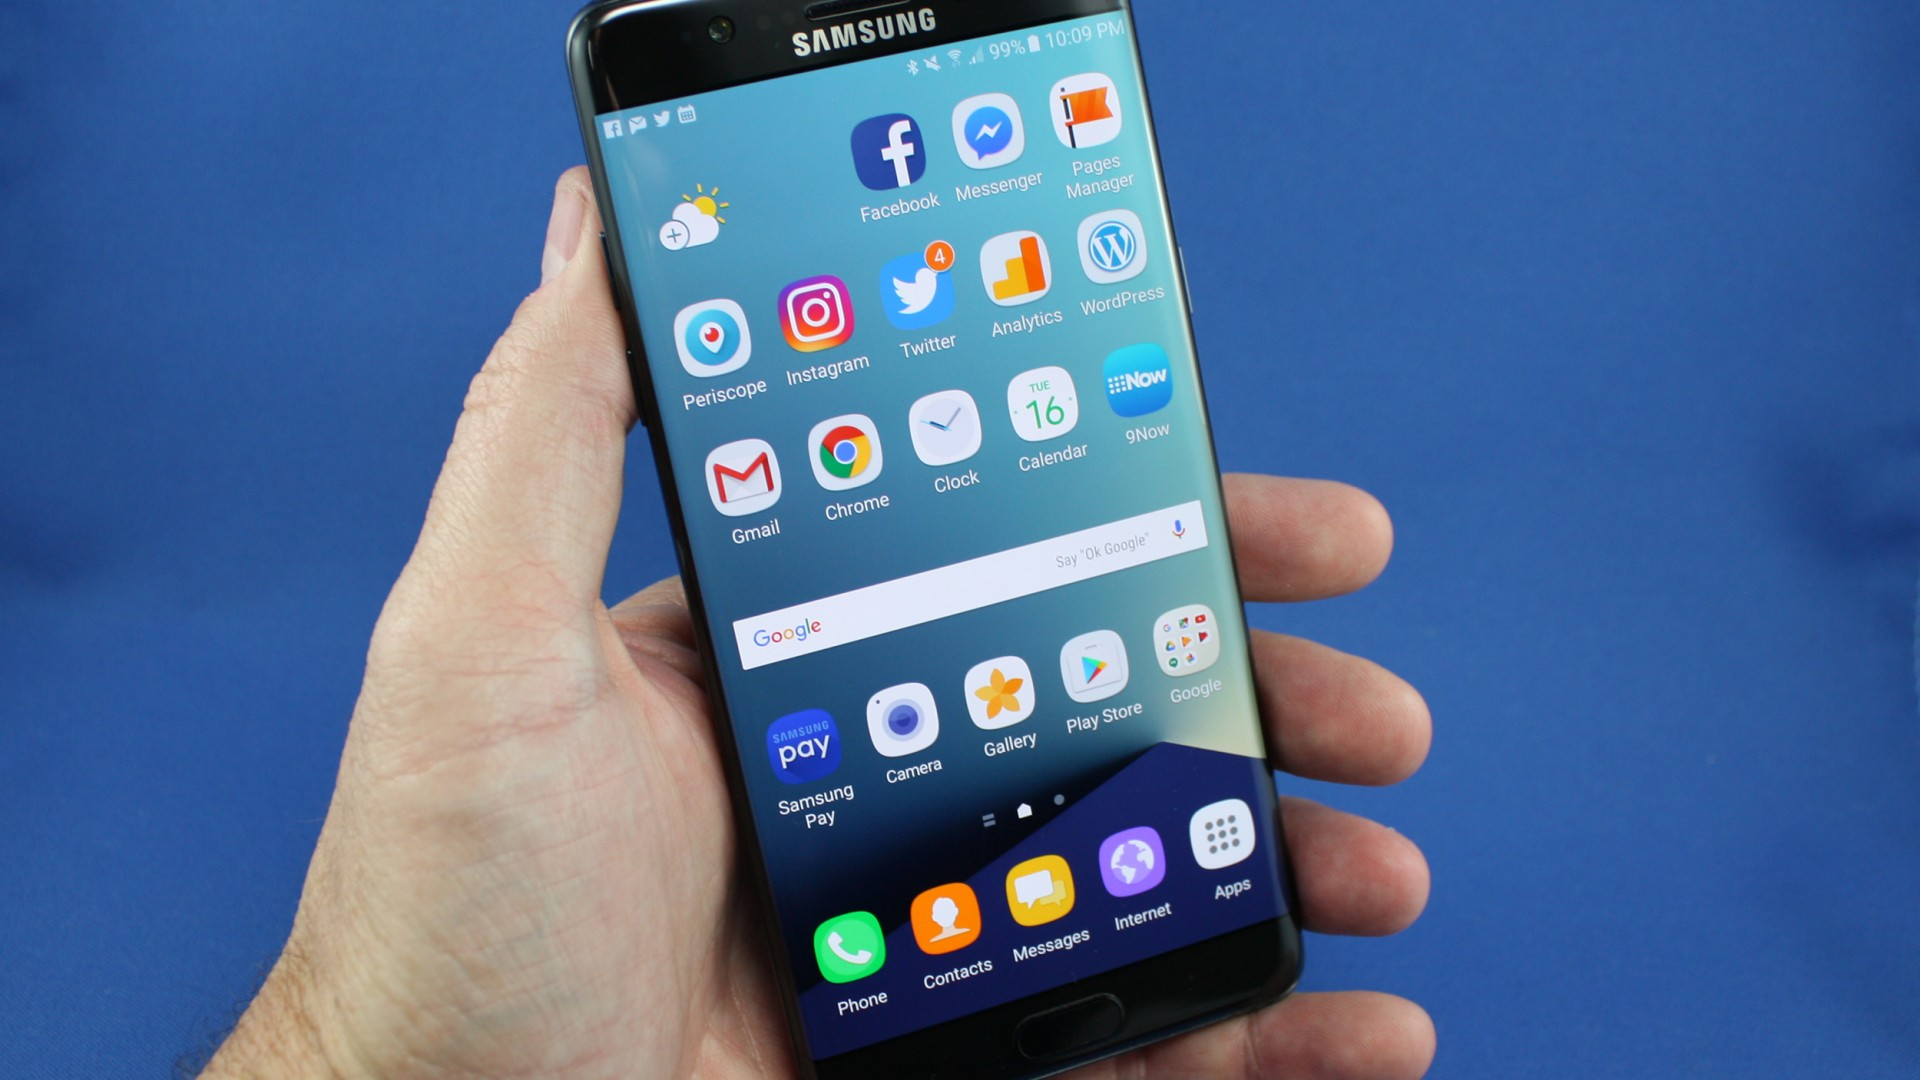 Samsung to recall phones after explosion claims